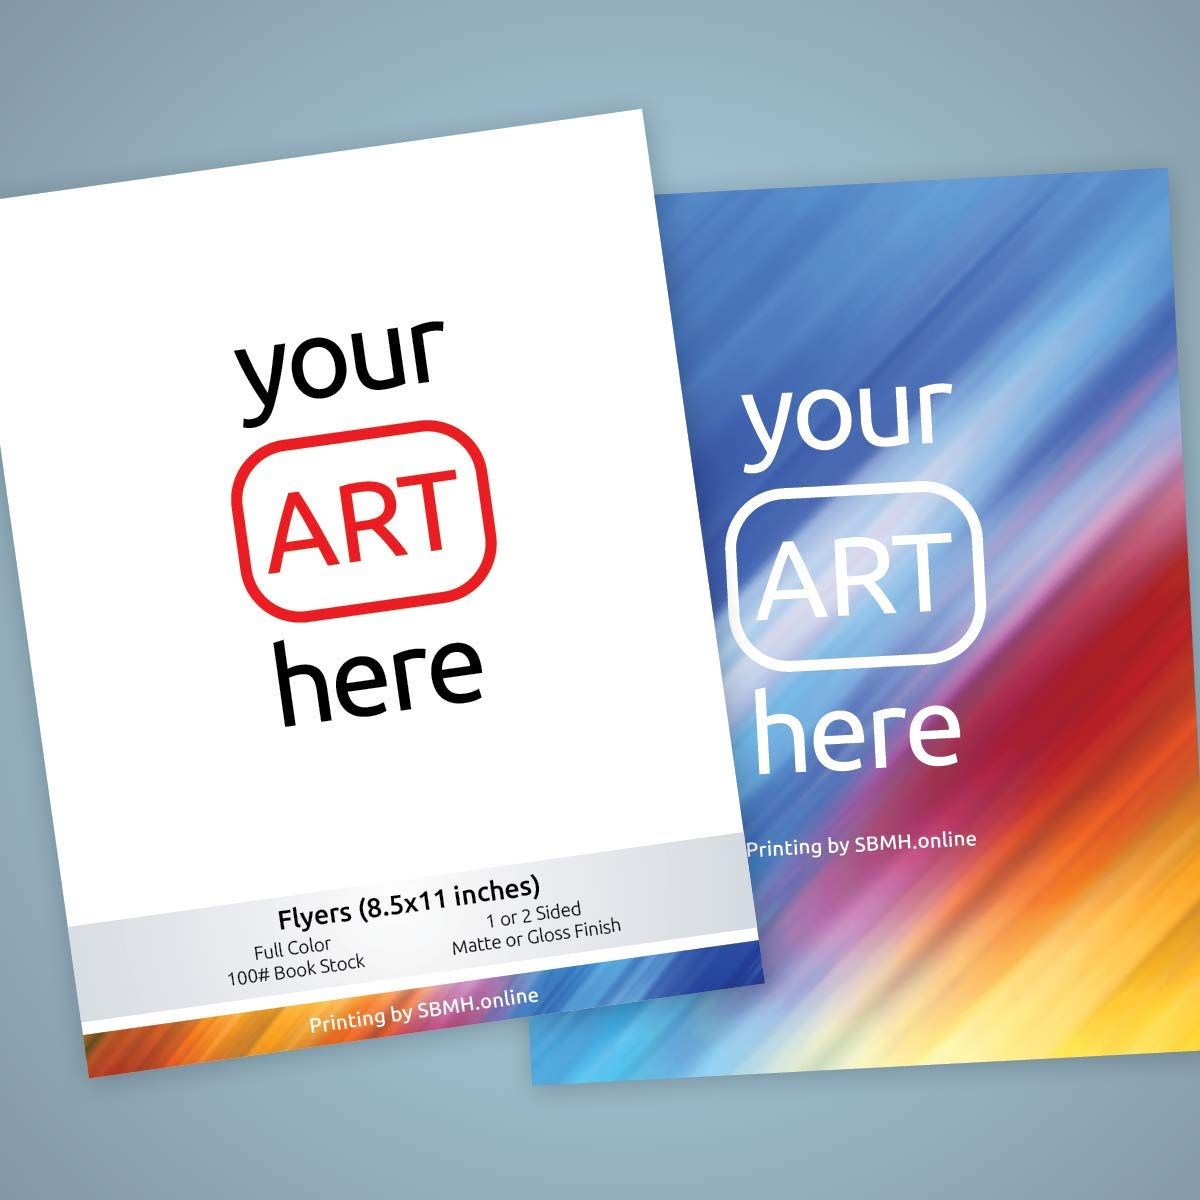 Flyer Printing -You supply the art and we'll print it for you! (500)